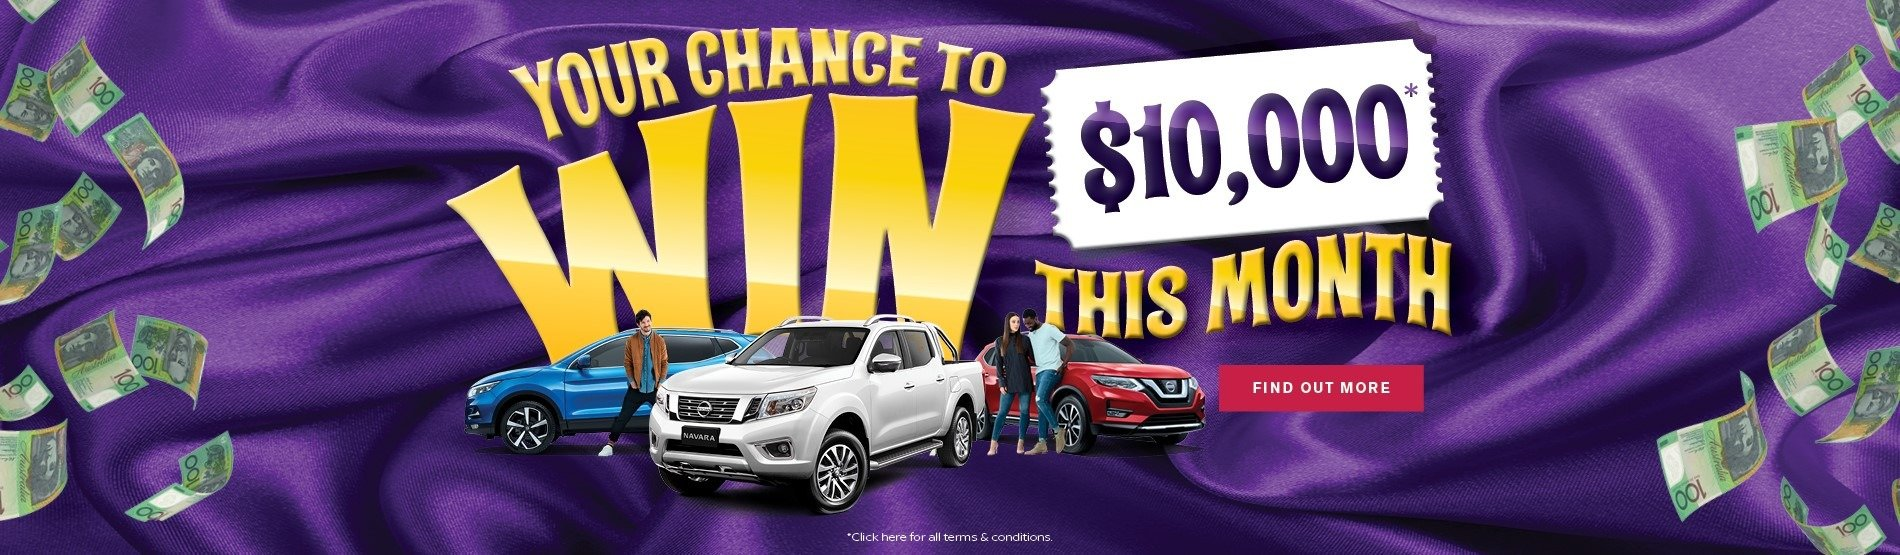 Rockdale Nissan - Your Chance To Win!